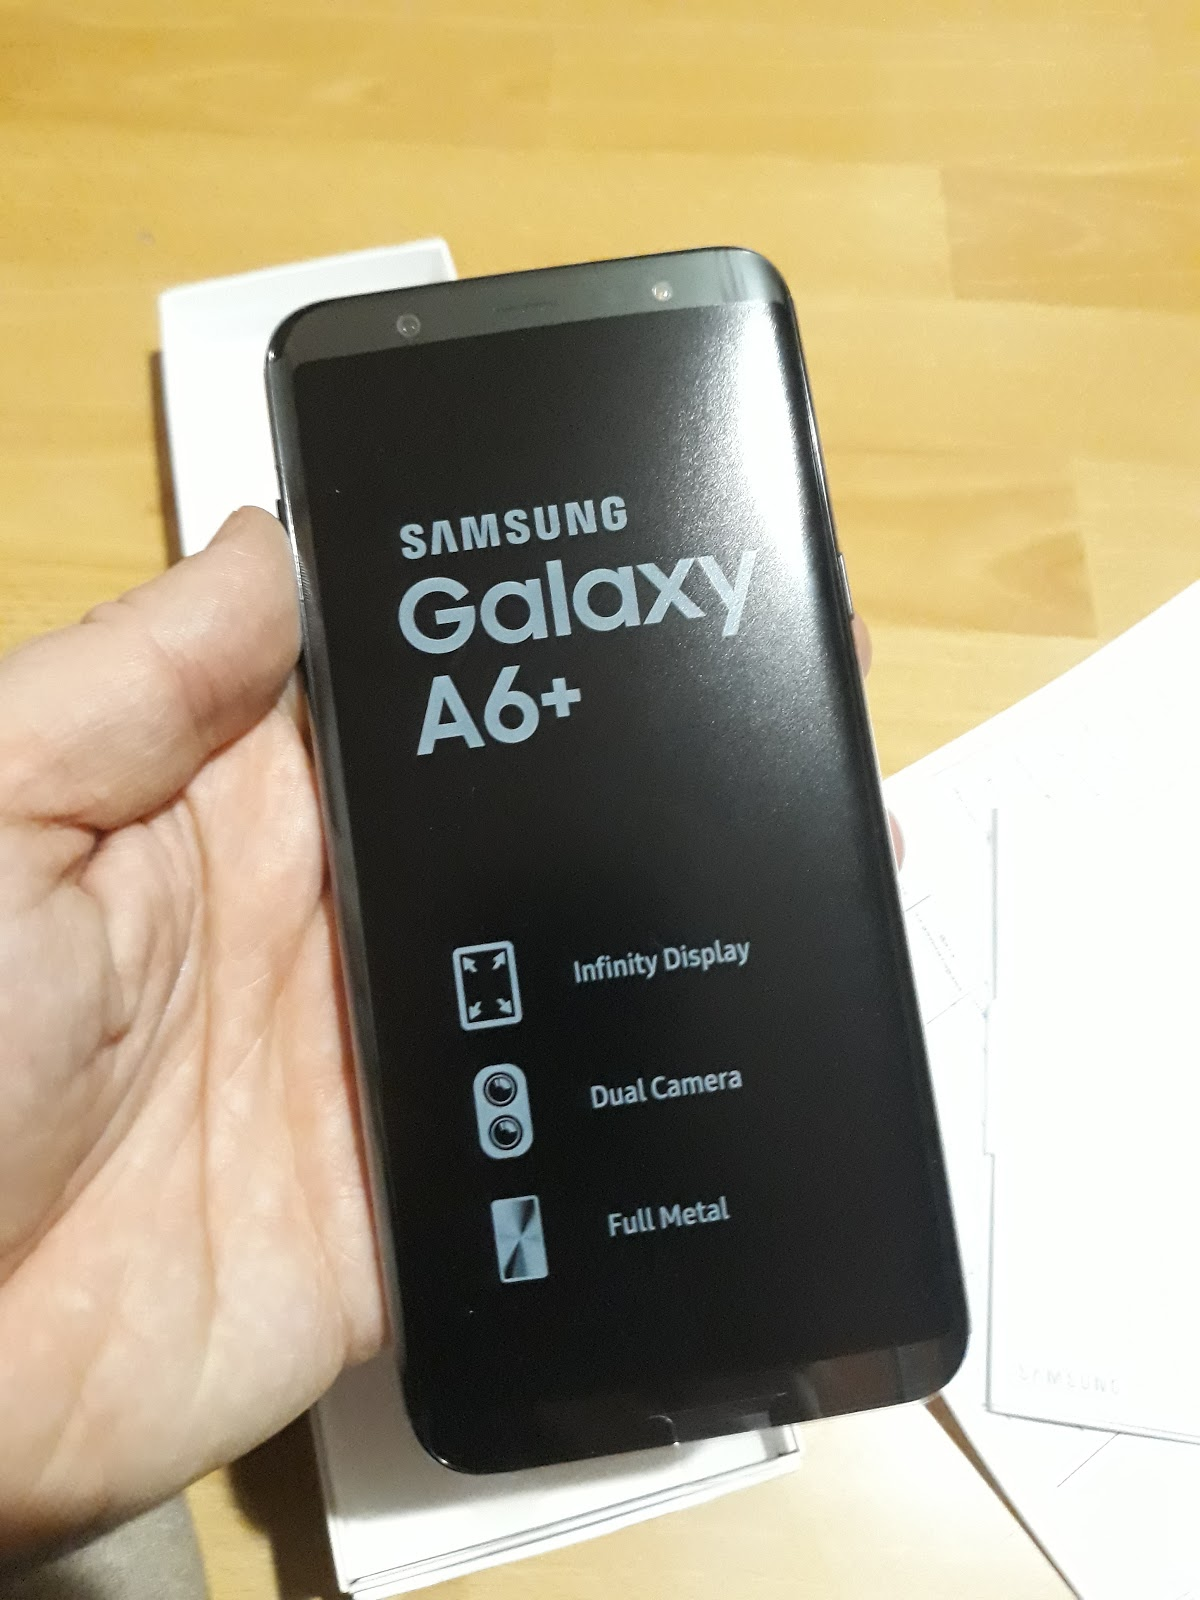 My opinion about Samsung Galaxy A6+